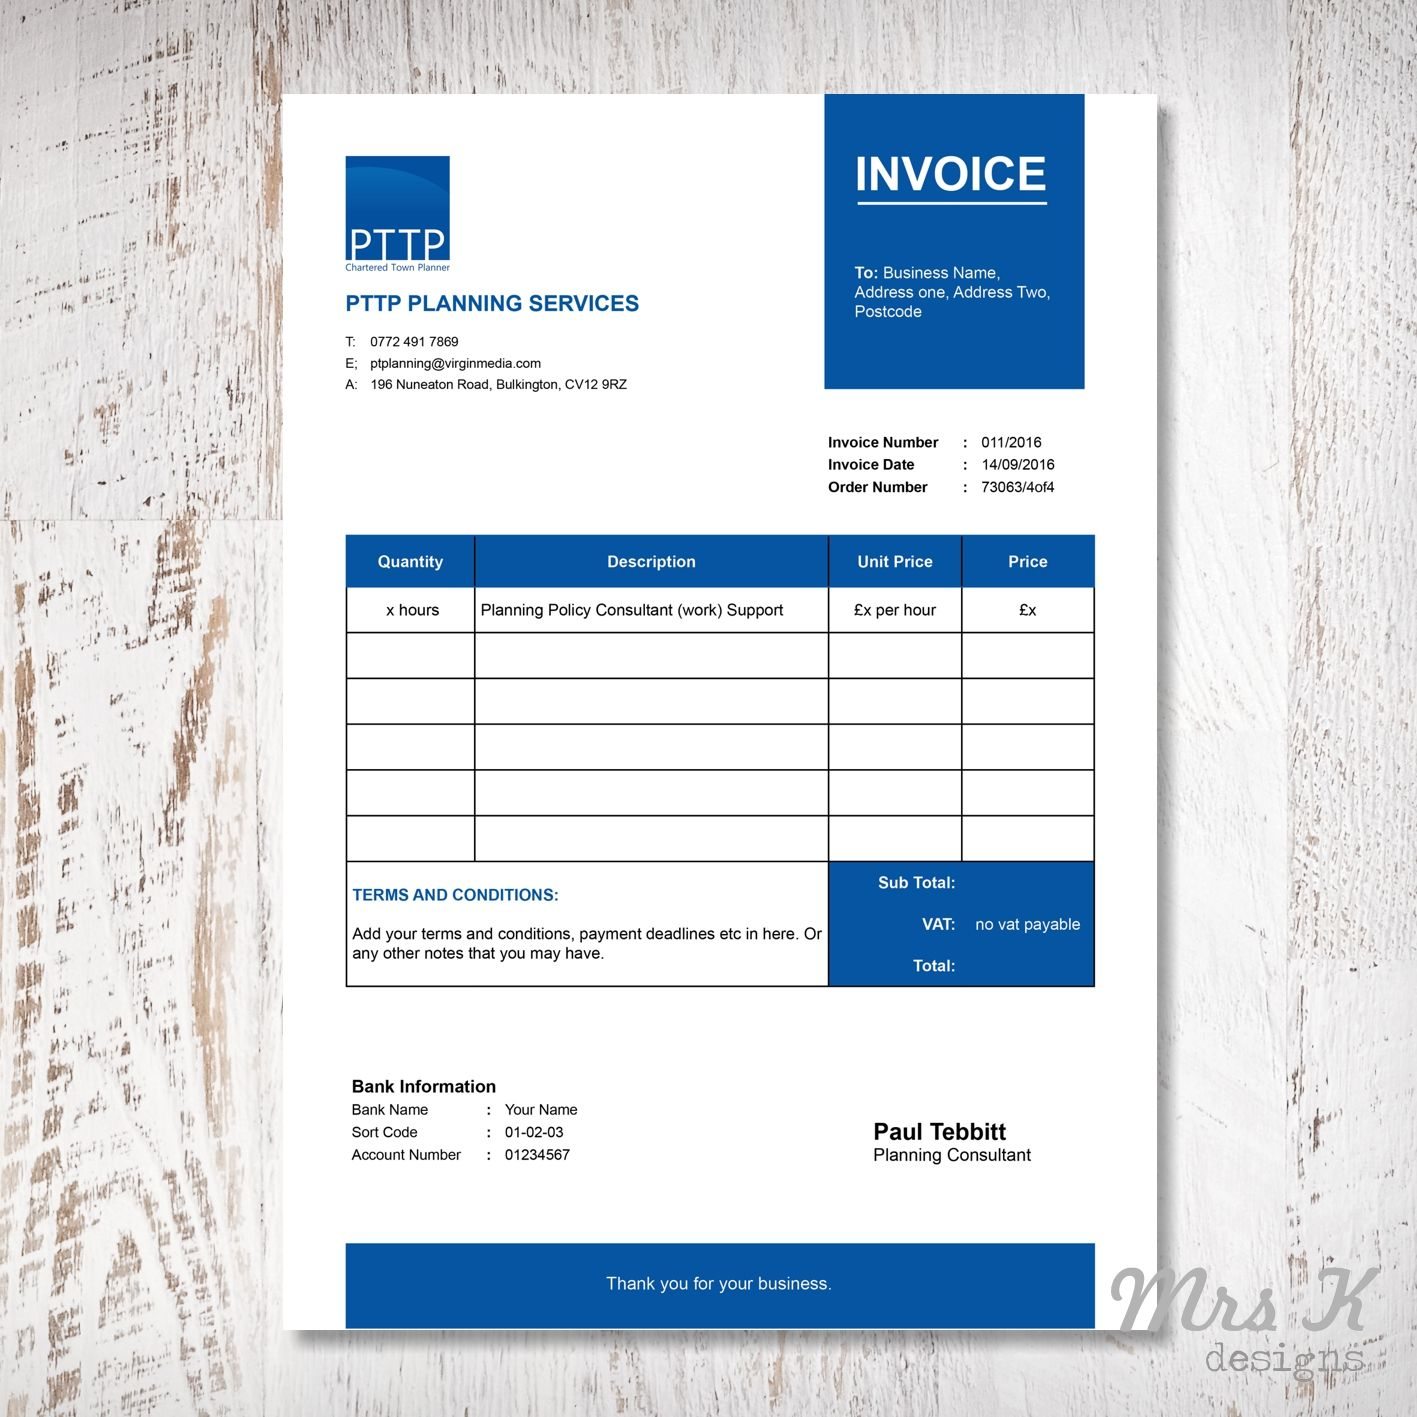 PTTP Invoice